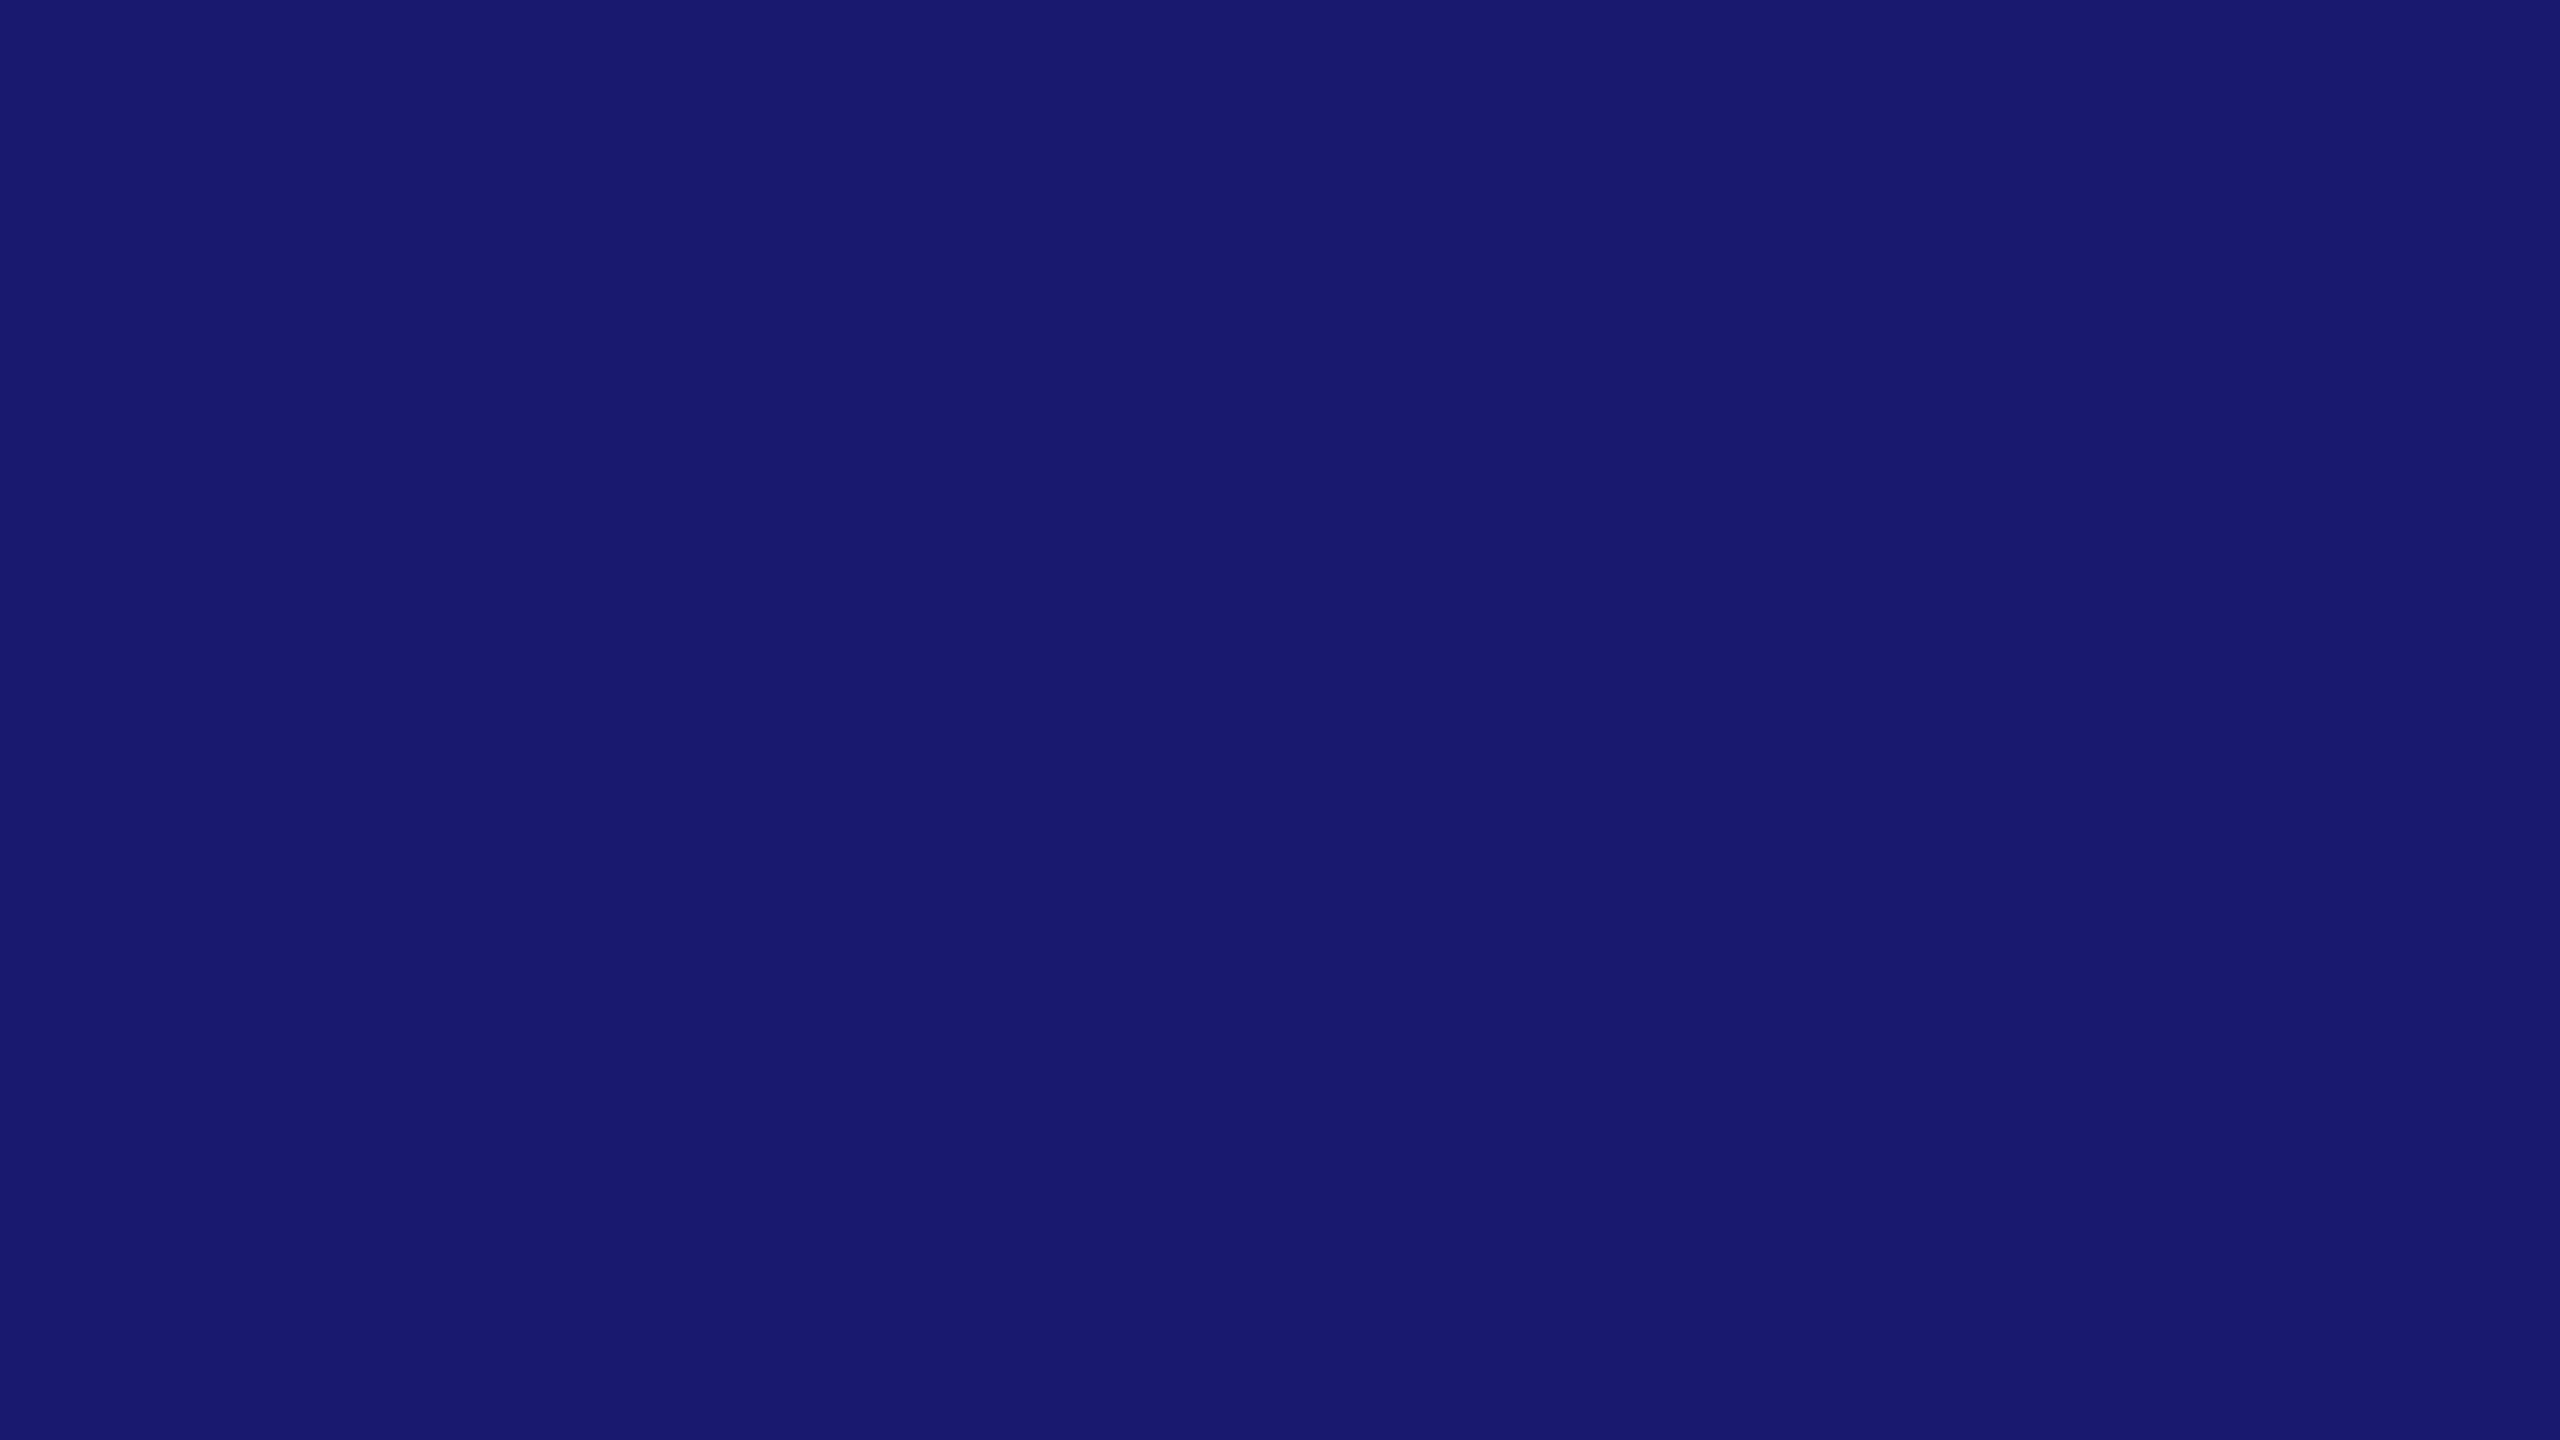 2560x1440 midnight blue solid color background